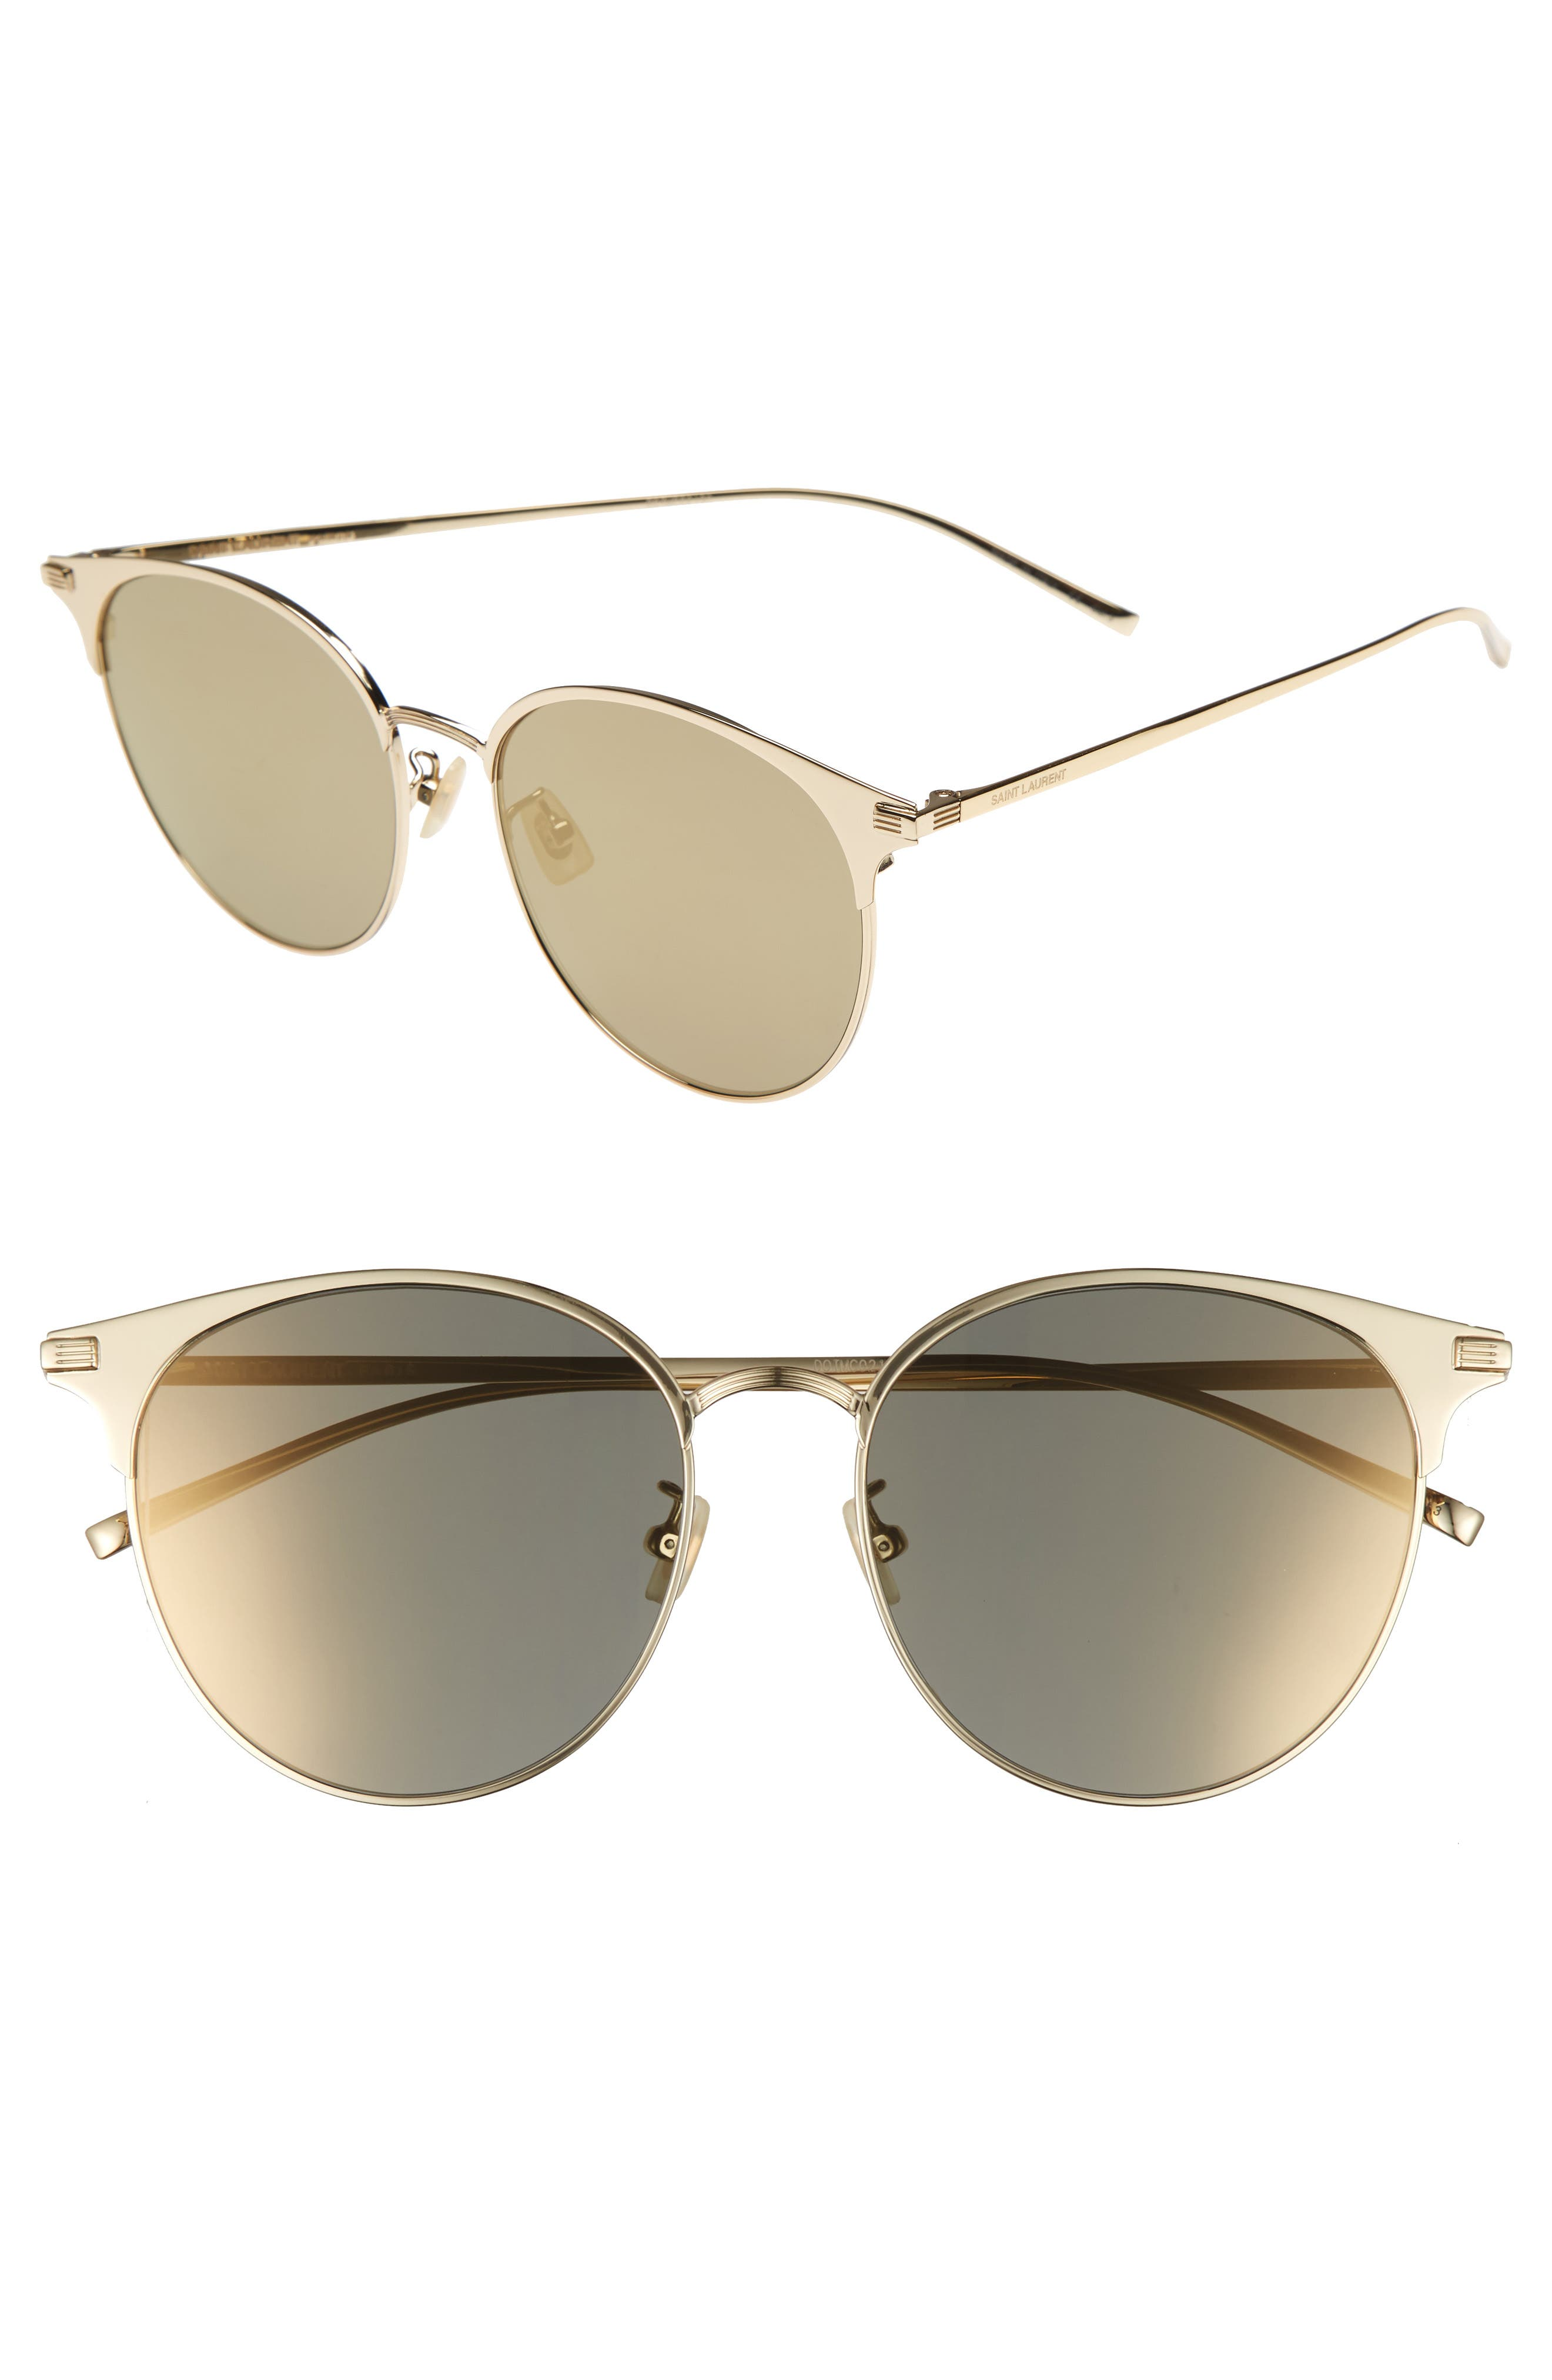 57mm Sunglasses,                         Main,                         color, Gold